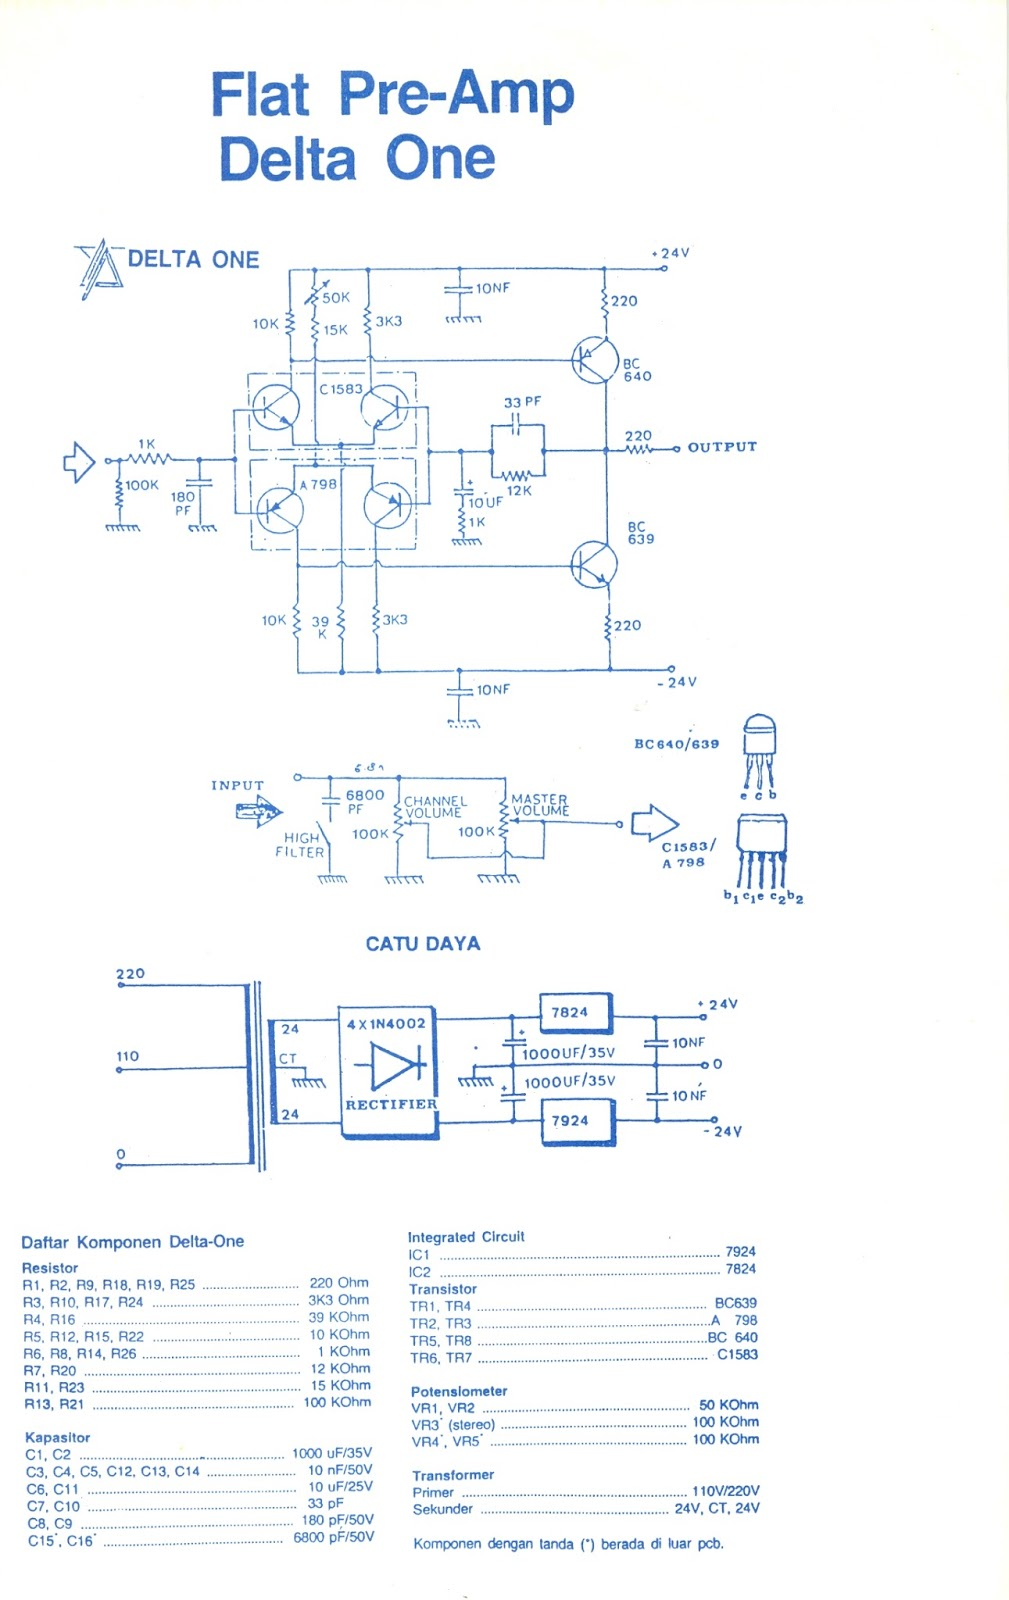 Class Ab Amplifier Skema My Colections T 60 Watts Audio Circuit Using Tda7296 Next Schematic Is Flat Pre Amp I Not Quite Sure The Result But Dont Think This Better Than Only A Potentiometer For Passive